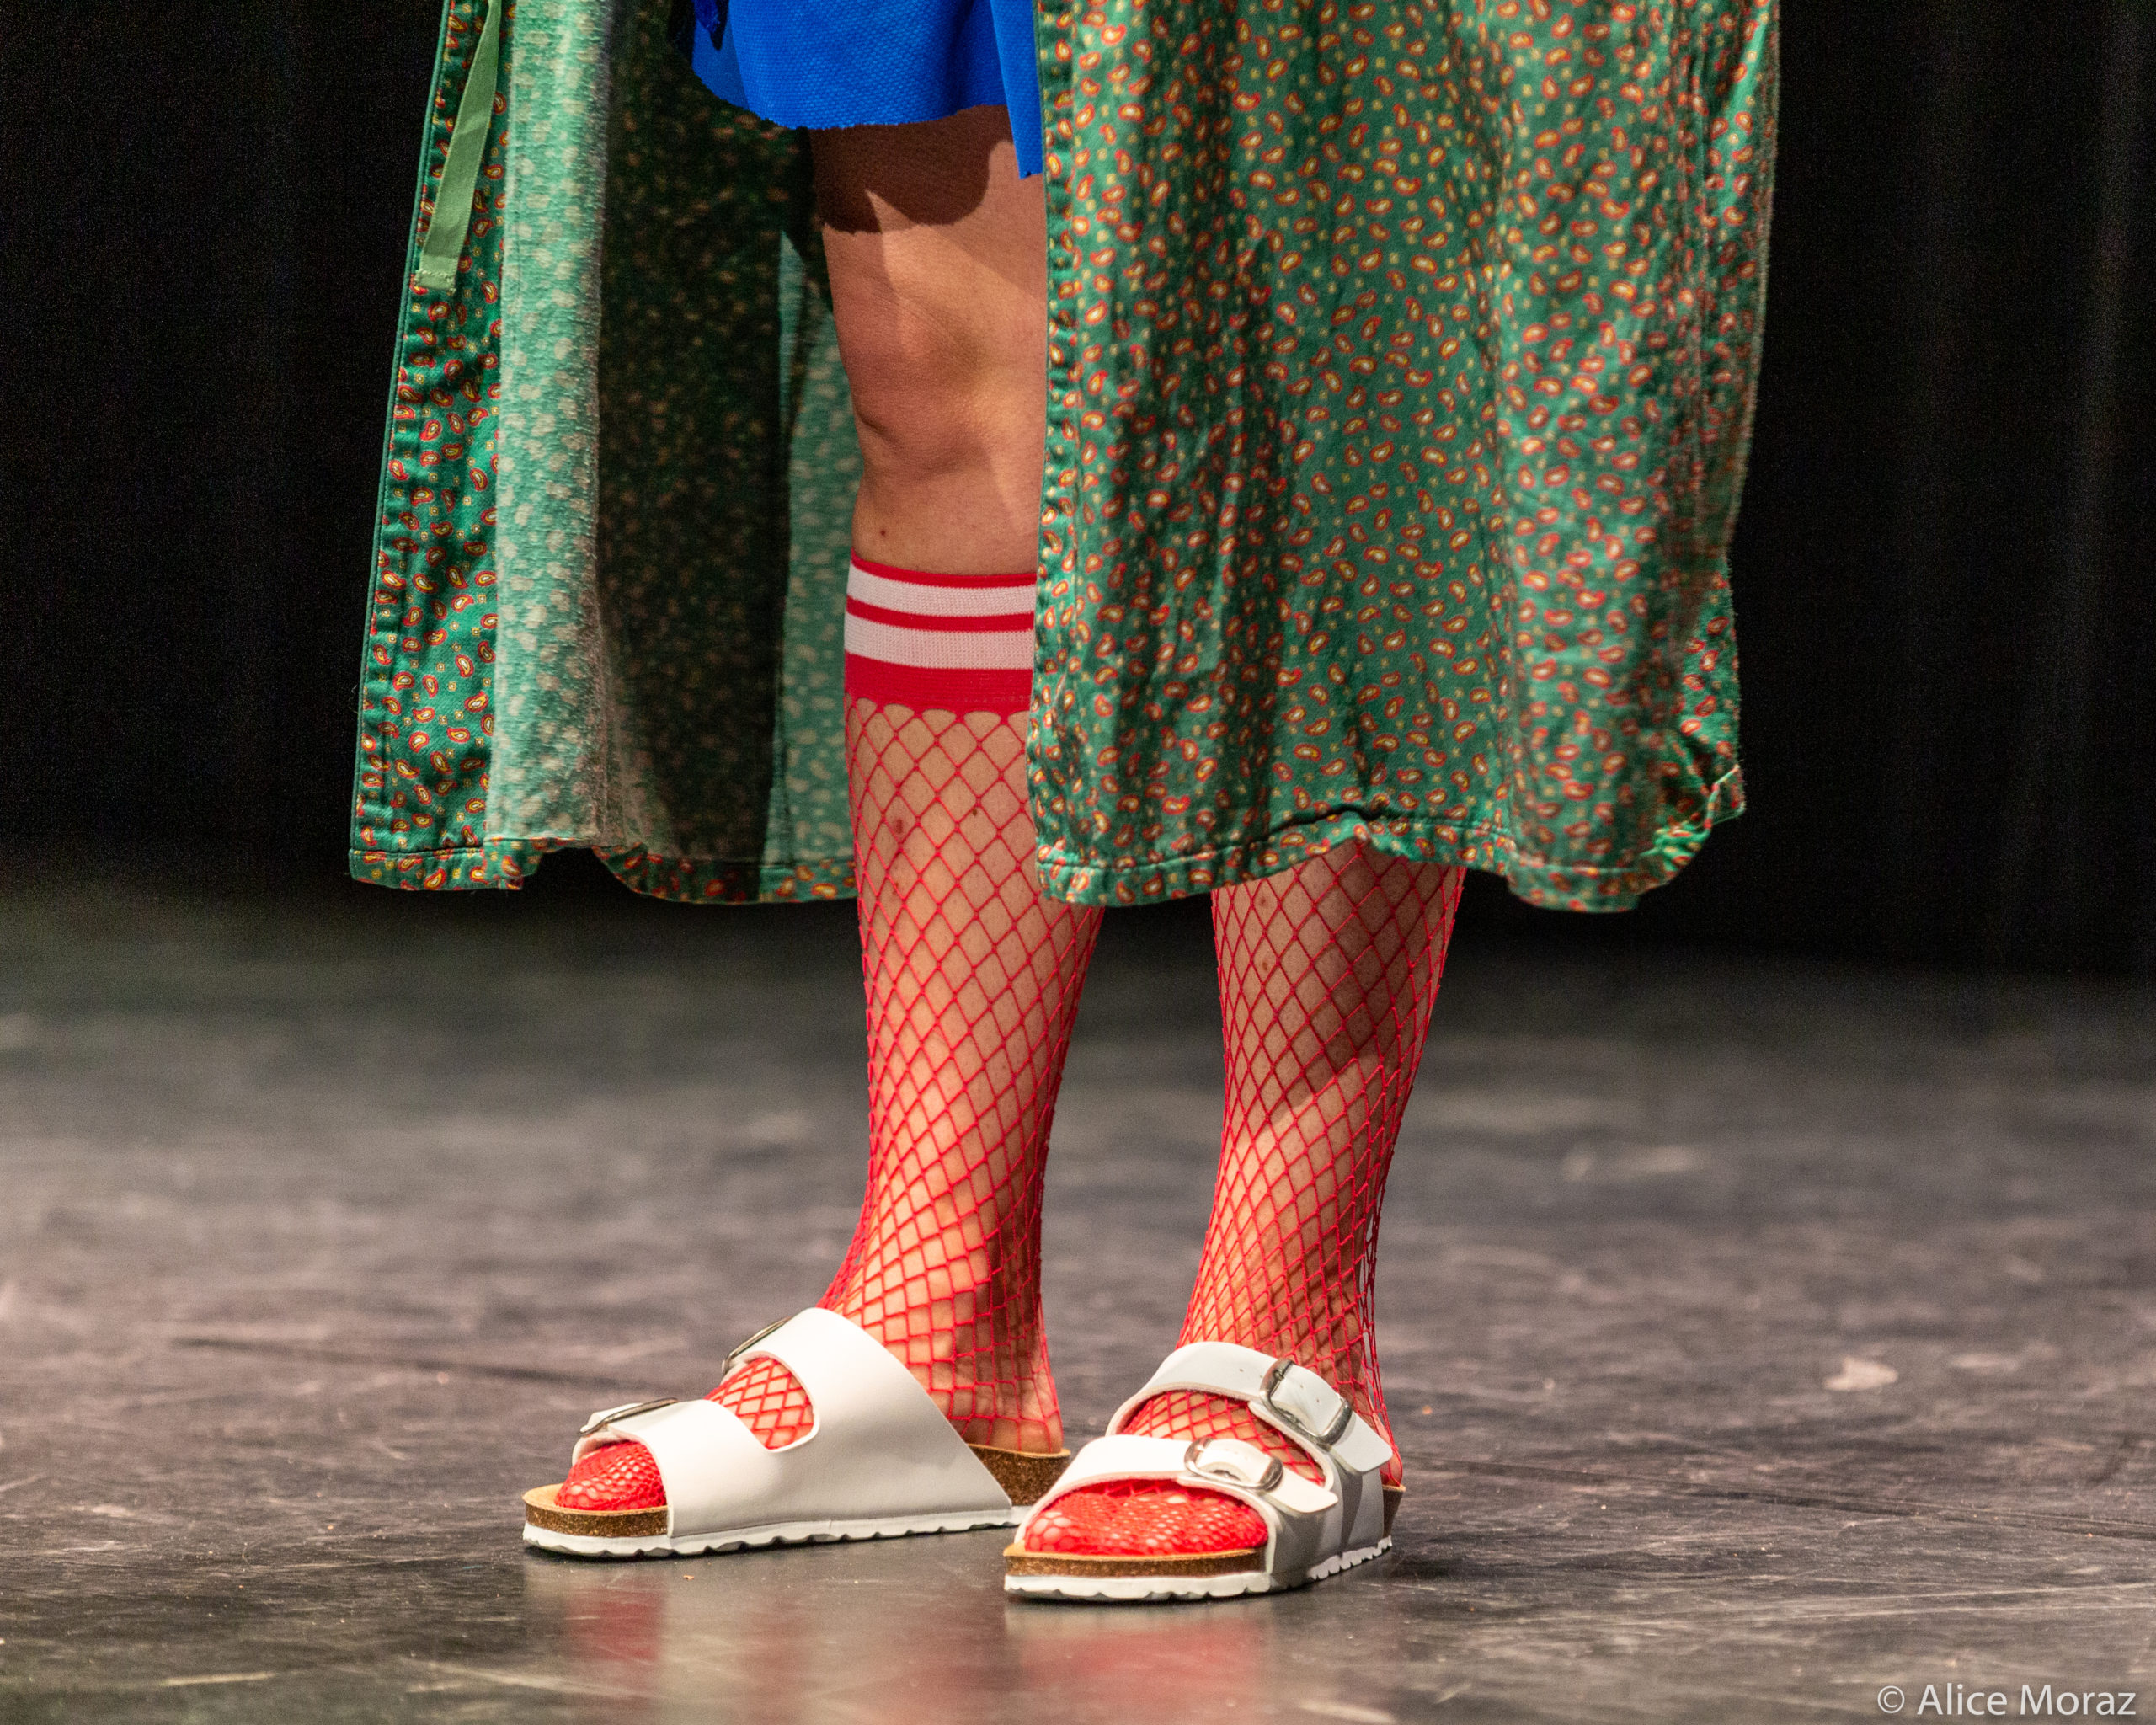 A pair of feet wearing Birkenstock sandals and mid-calf length bright red fishnets, as well as a green robe.